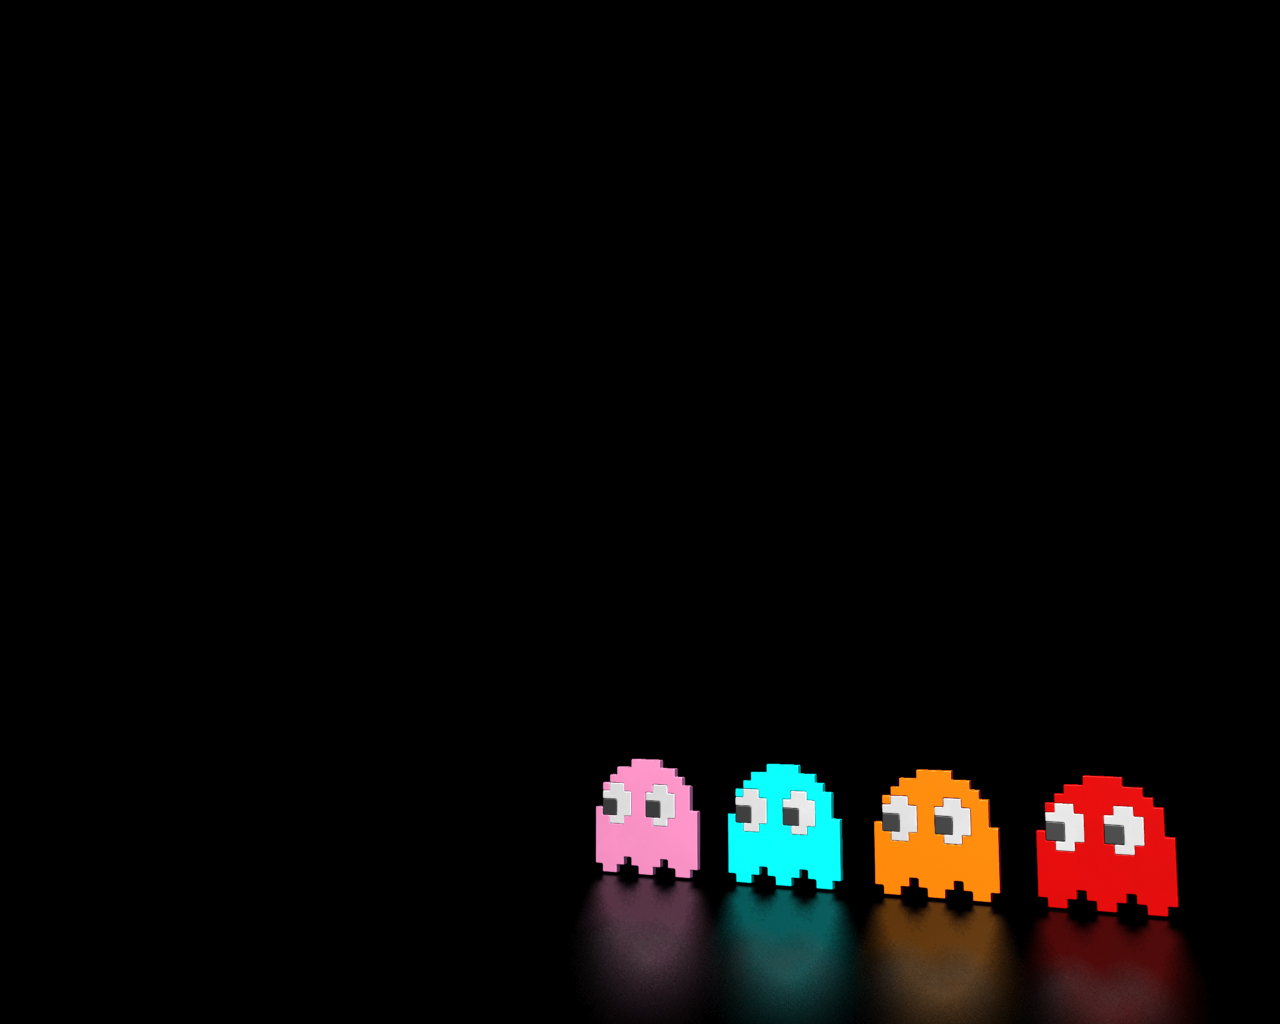 http://1.bp.blogspot.com/-k-N_3gaXSt4/UAkcS53wF-I/AAAAAAAABpc/U1Gtk6Nv1E0/s1600/pacman+ghost+wallpaper+background+pink+blue+orange+red+classic+arcade+game.jpg